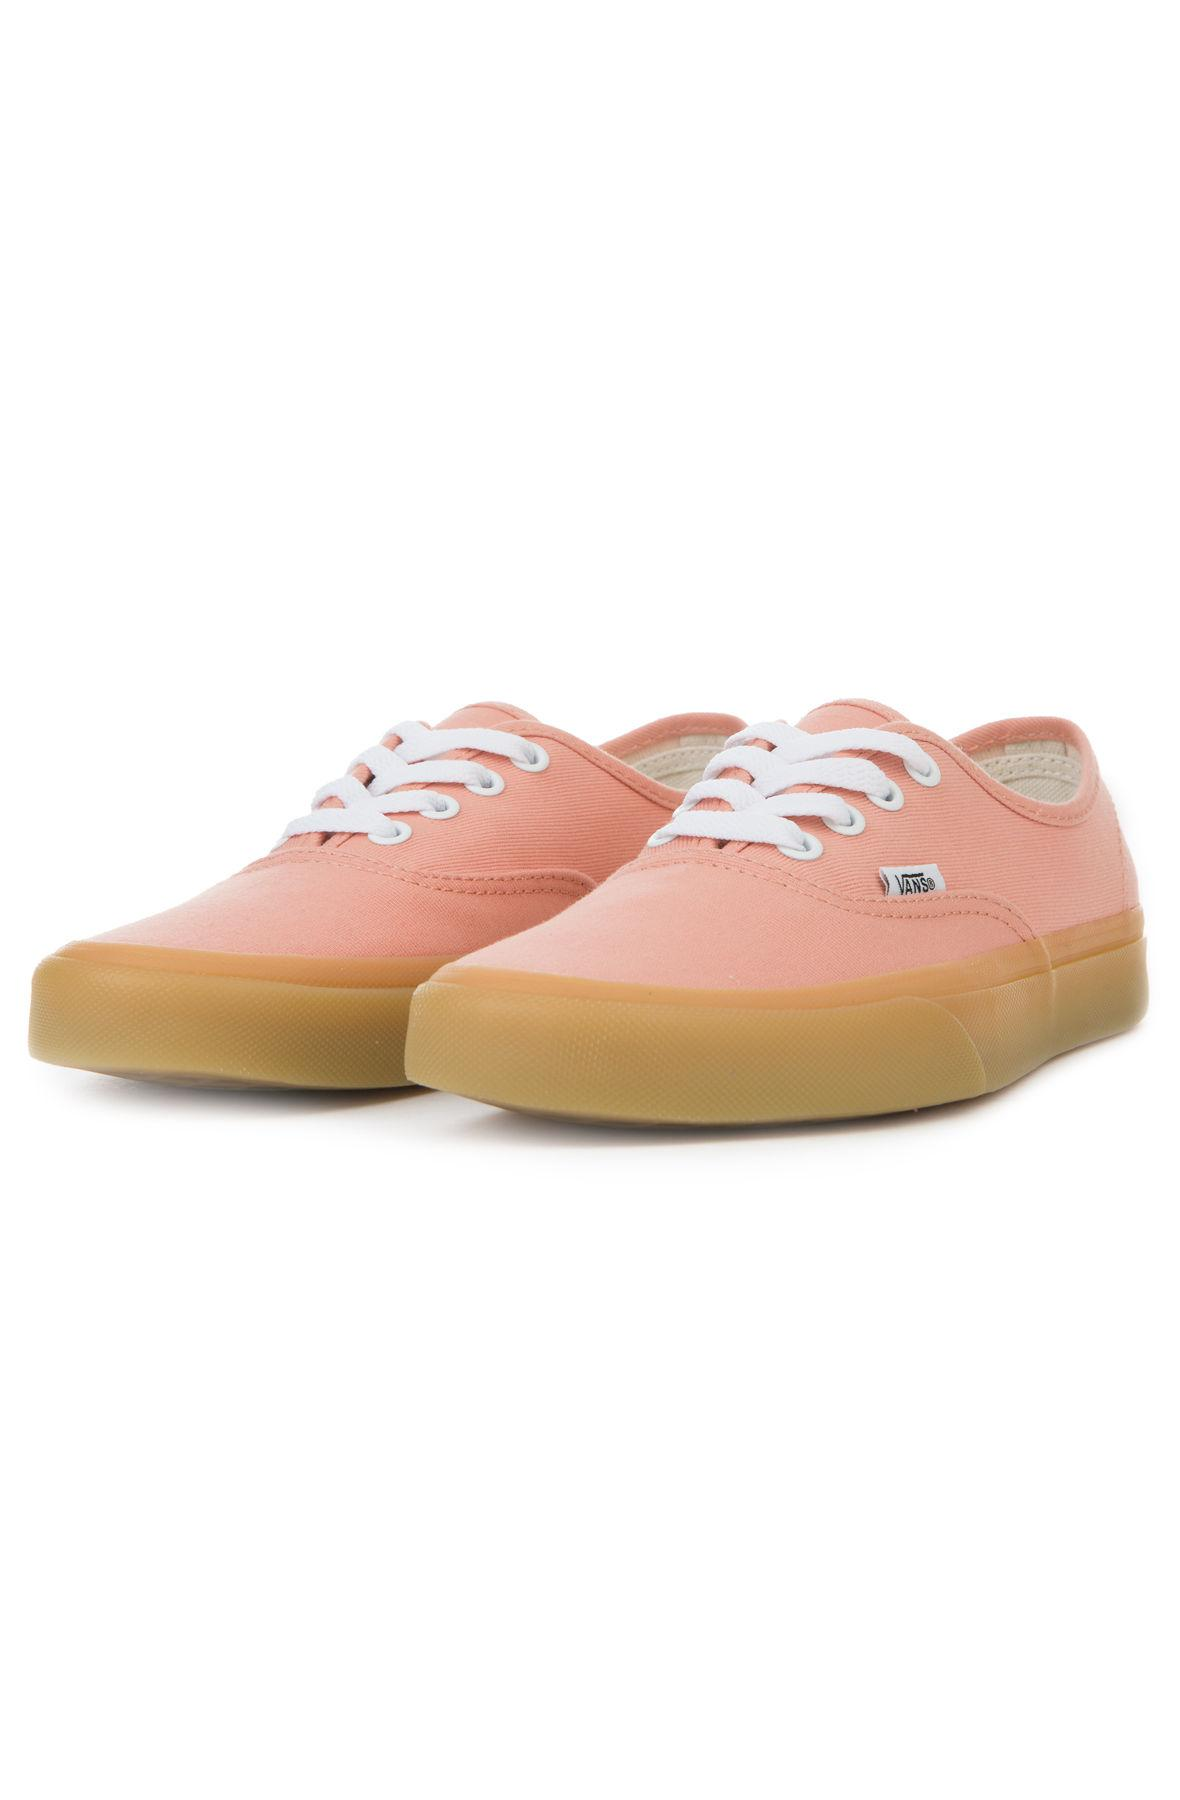 6d00f31a14 Lyst - Vans The Women s Authentic In Muted Clay And Gum in Pink